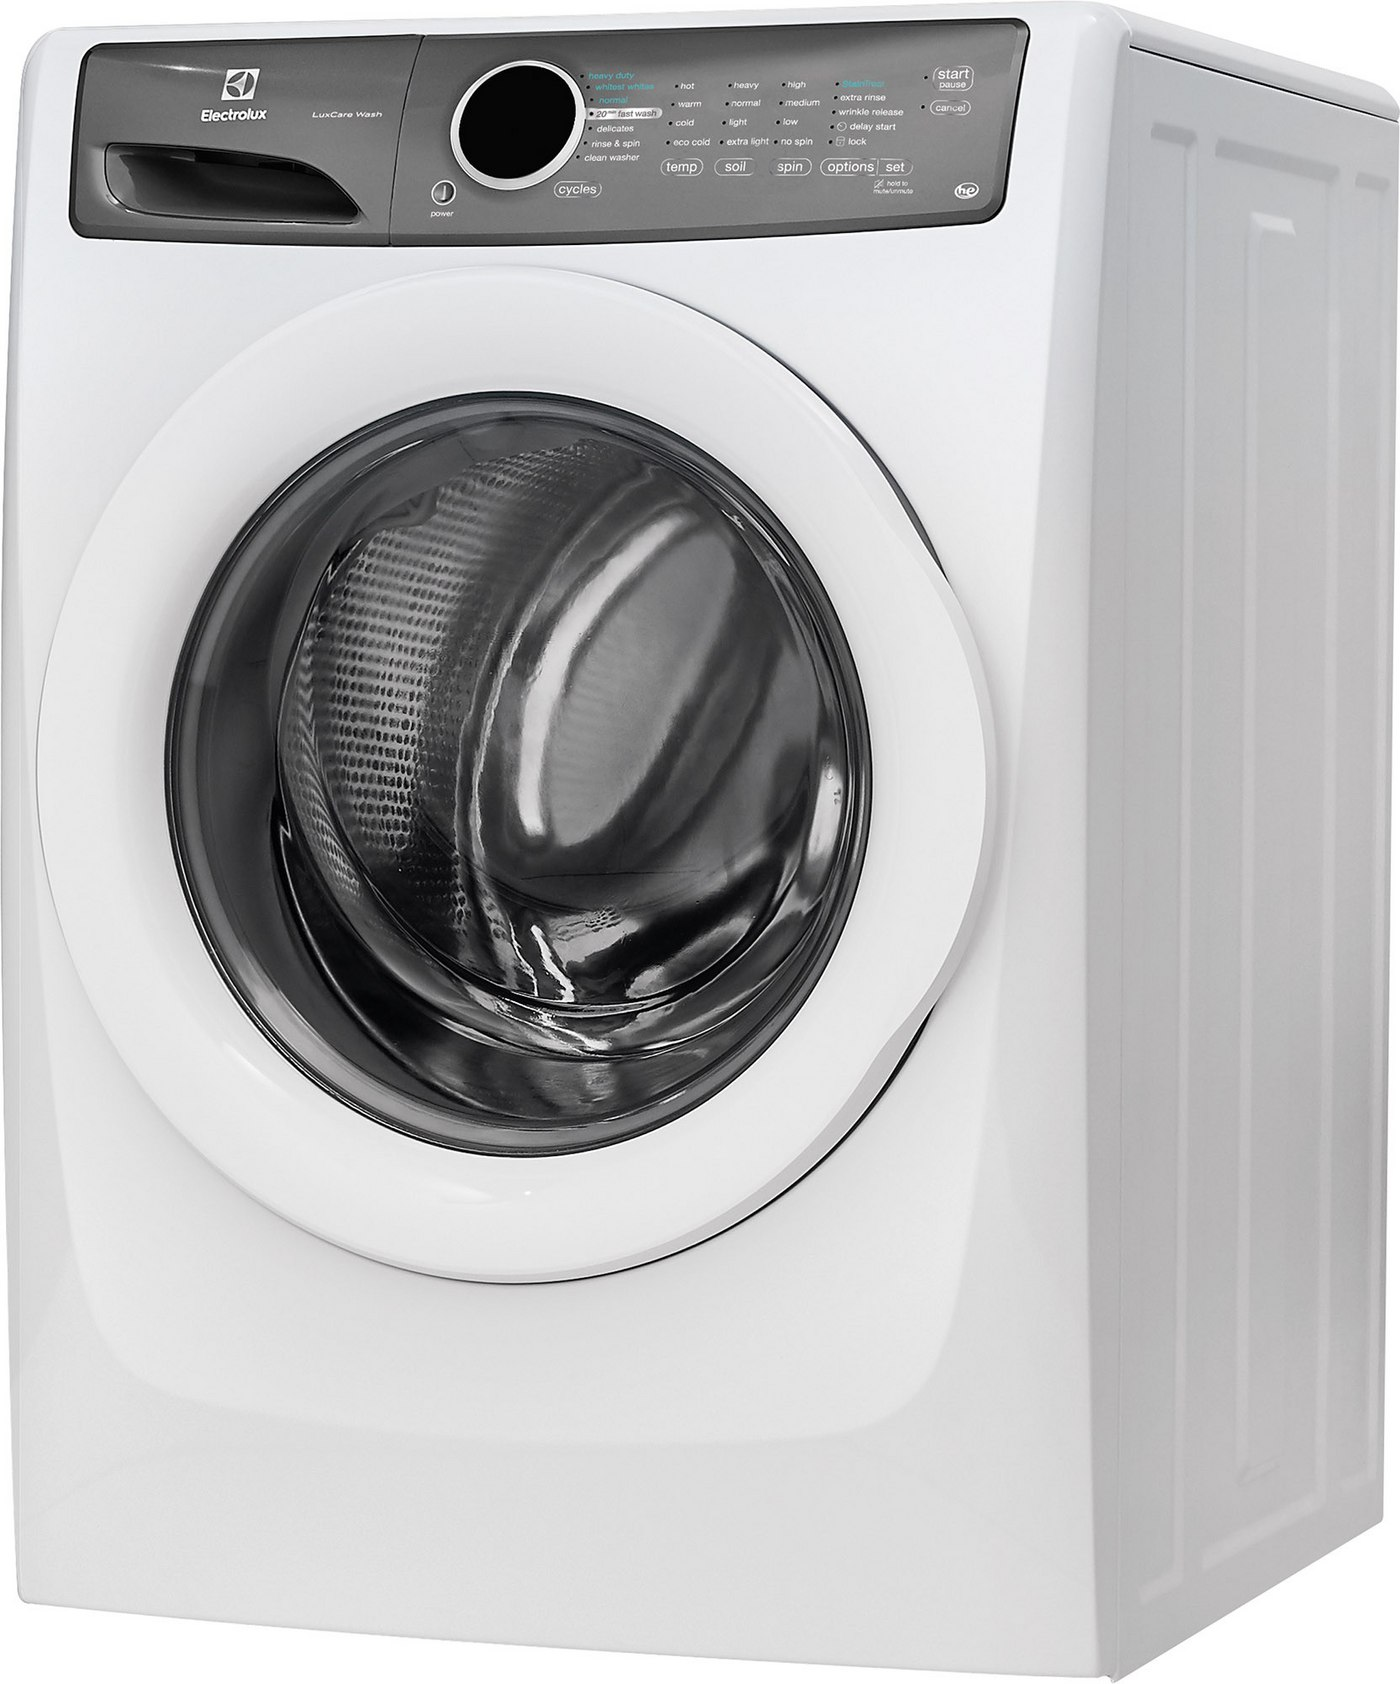 washers electrolux eflw417siw - Best Rated Washer And Dryer